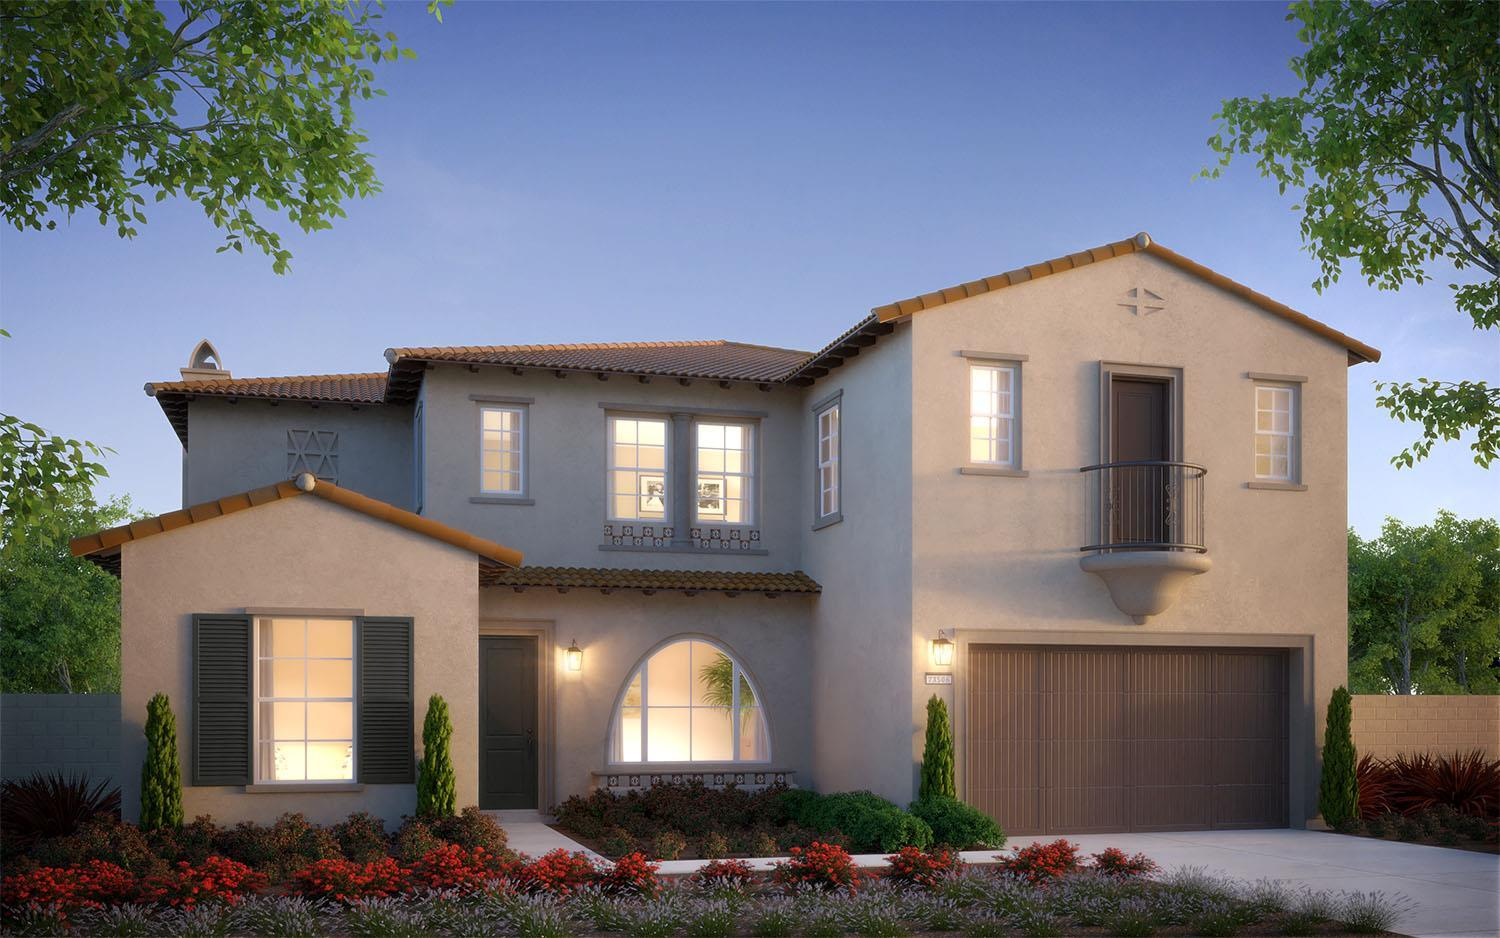 Single Family for Active at Marywood Hills - Plan 3 2811 E Villa Real Drive Orange, California 92867 United States